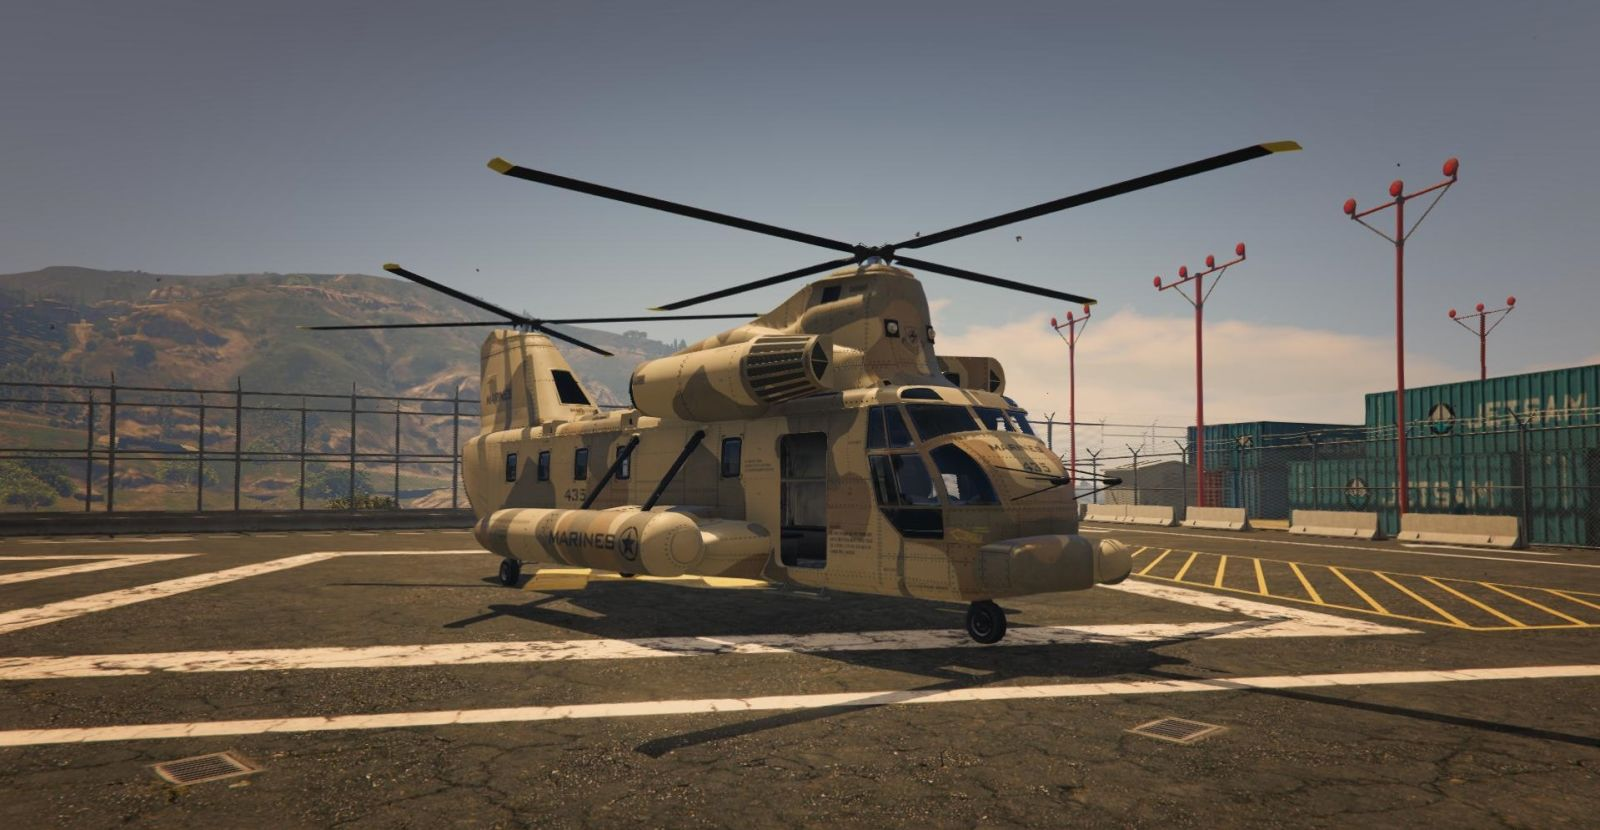 Gta 5 Cargobob Location Online, Gta, Free Engine Image For ...